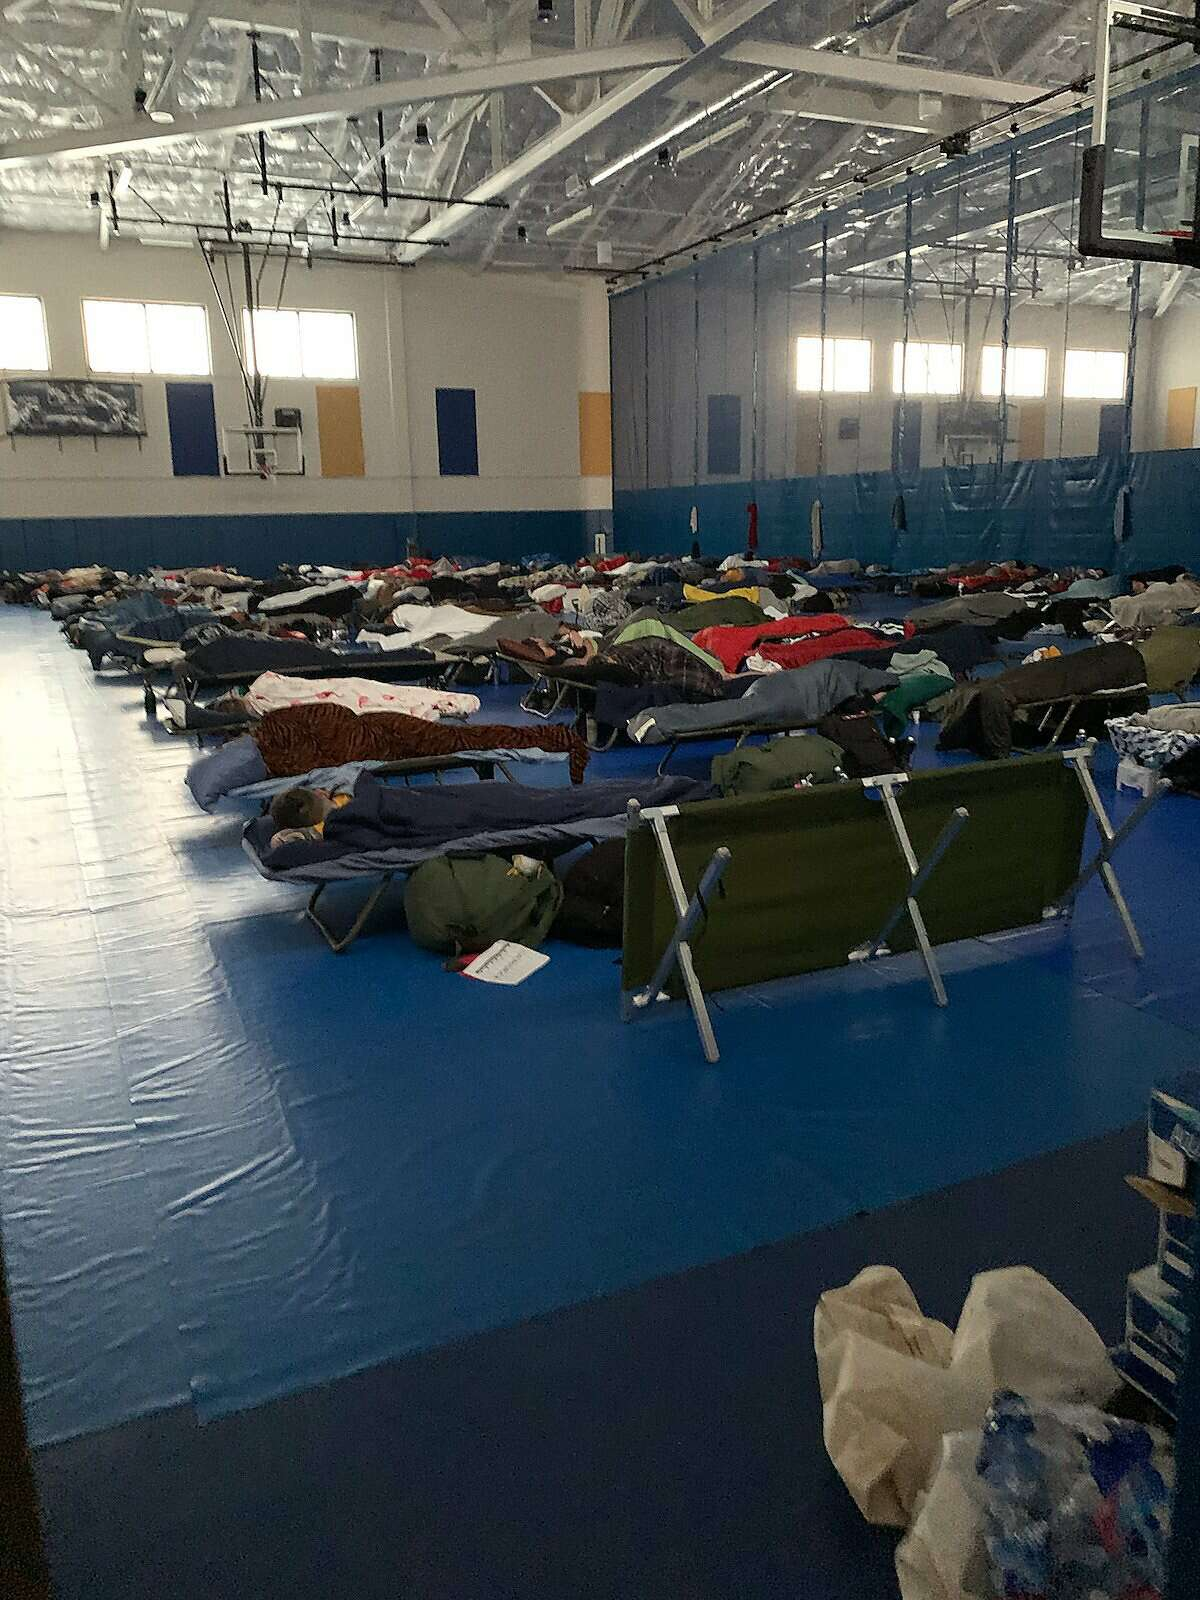 There were more than 350 infected Theodore Roosevelt sailors in a Guam gym used as group quarantine on Friday. On Wednesday, there had been less than 50, said Mark Blakewood, whose son is there.